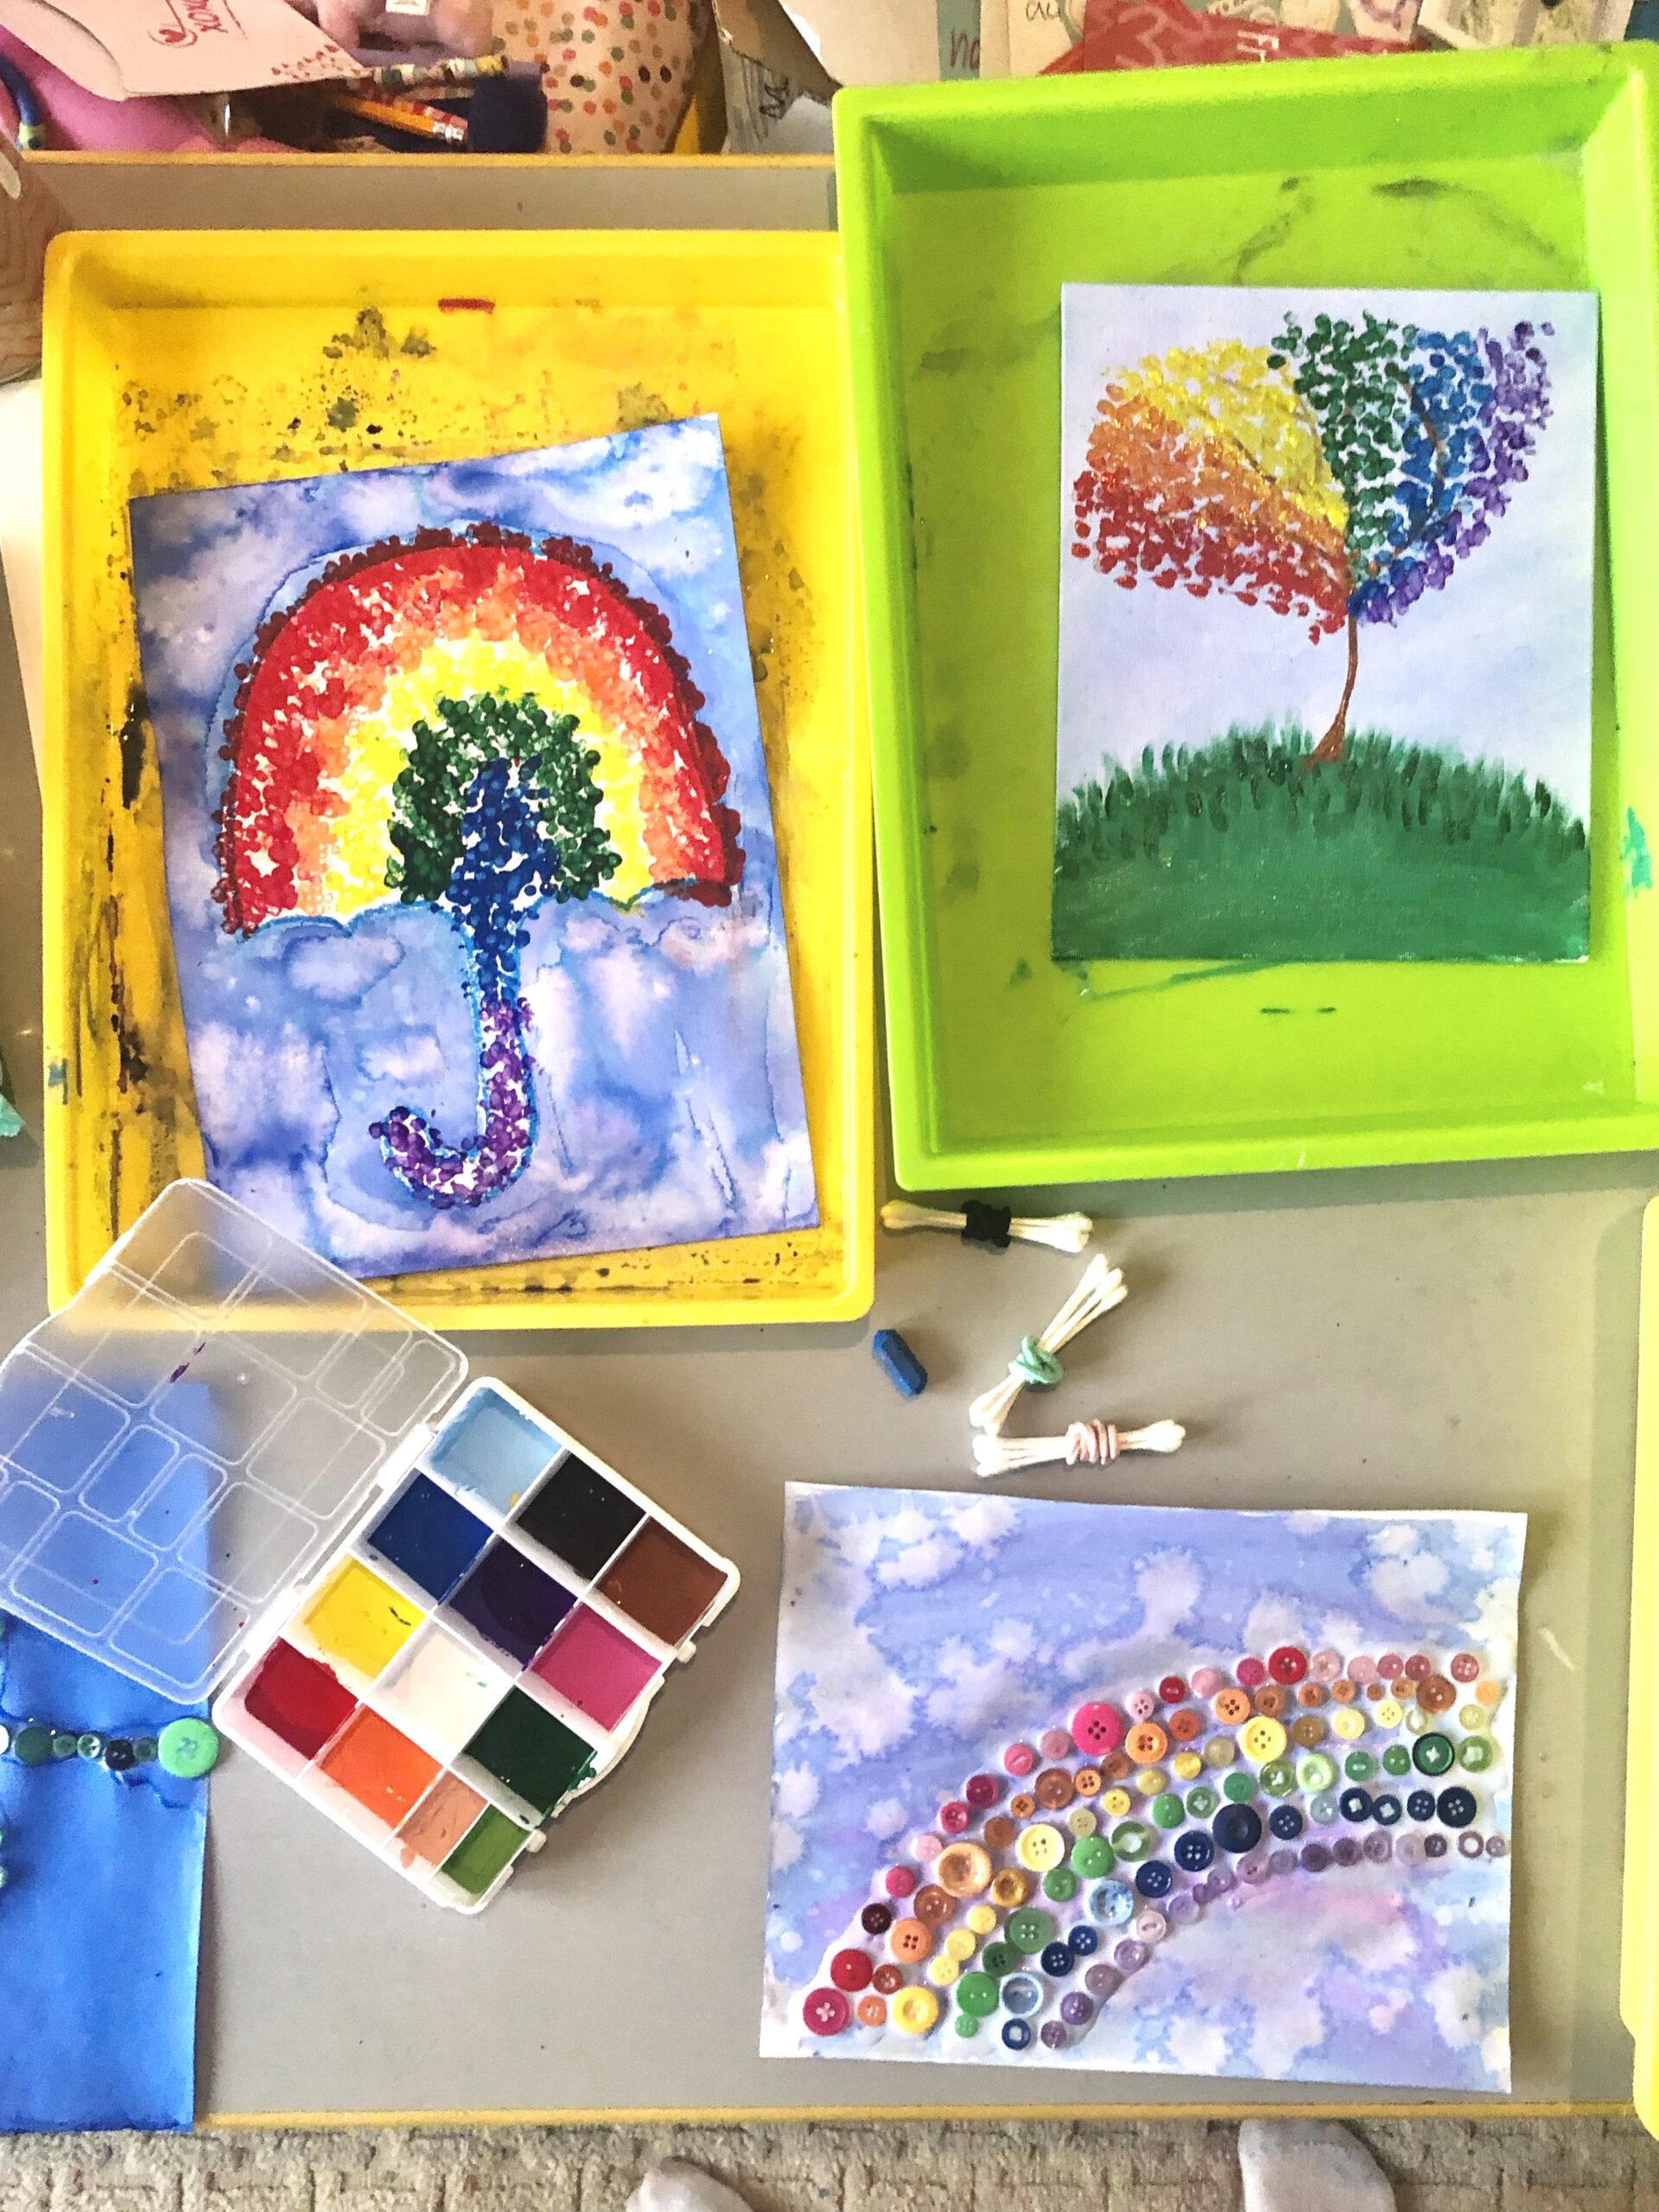 Pointillism 🌈 Rainbow Style. The Artist of the Month is Georges Seurat, a French painter who developed Pointillism. His famous piece, Sunday Afternoon on the Island of La Grande Jatte, took him 2 years to finish and is 10 feet long. As part of our projects this month, each grade will be taking a portion of his artwork and adding their own flare to it. The Fabulous First Graders have added their own spring time spin to the umbrellas. 👉🏼 Check out how unique they all are... {we also used a unique item other than q-tips. Can you guess what that is?}